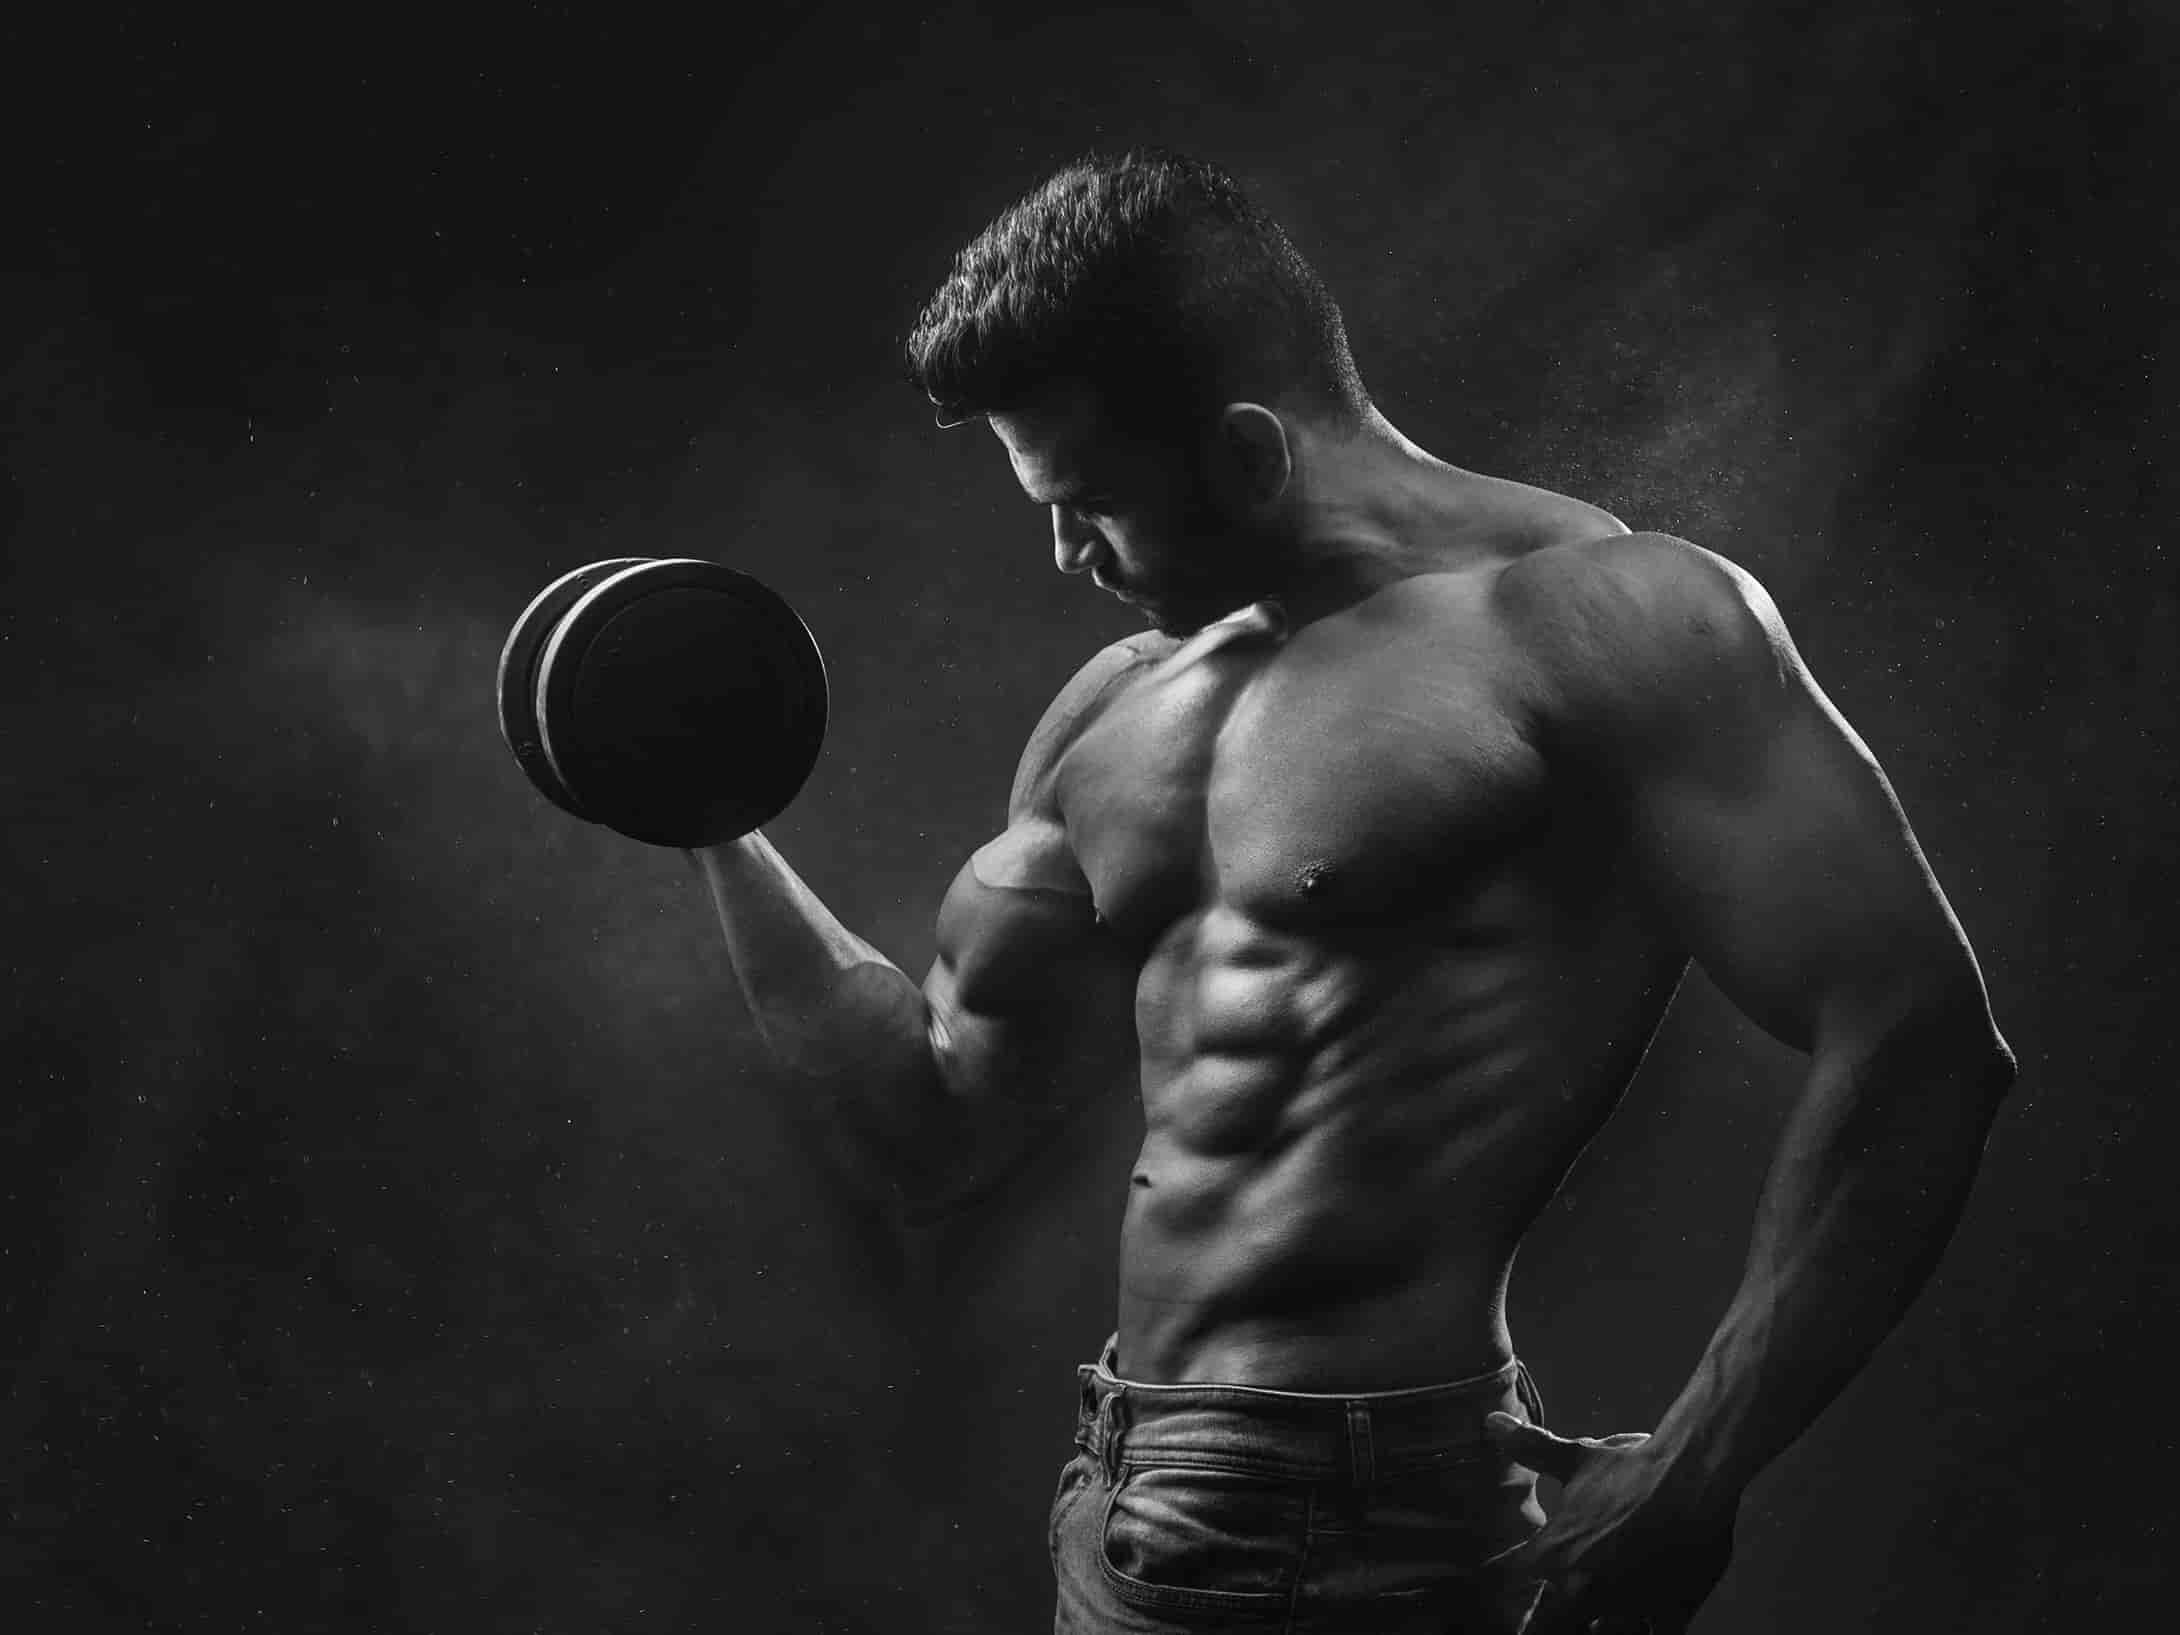 fit bodybuilder with muscles and abs